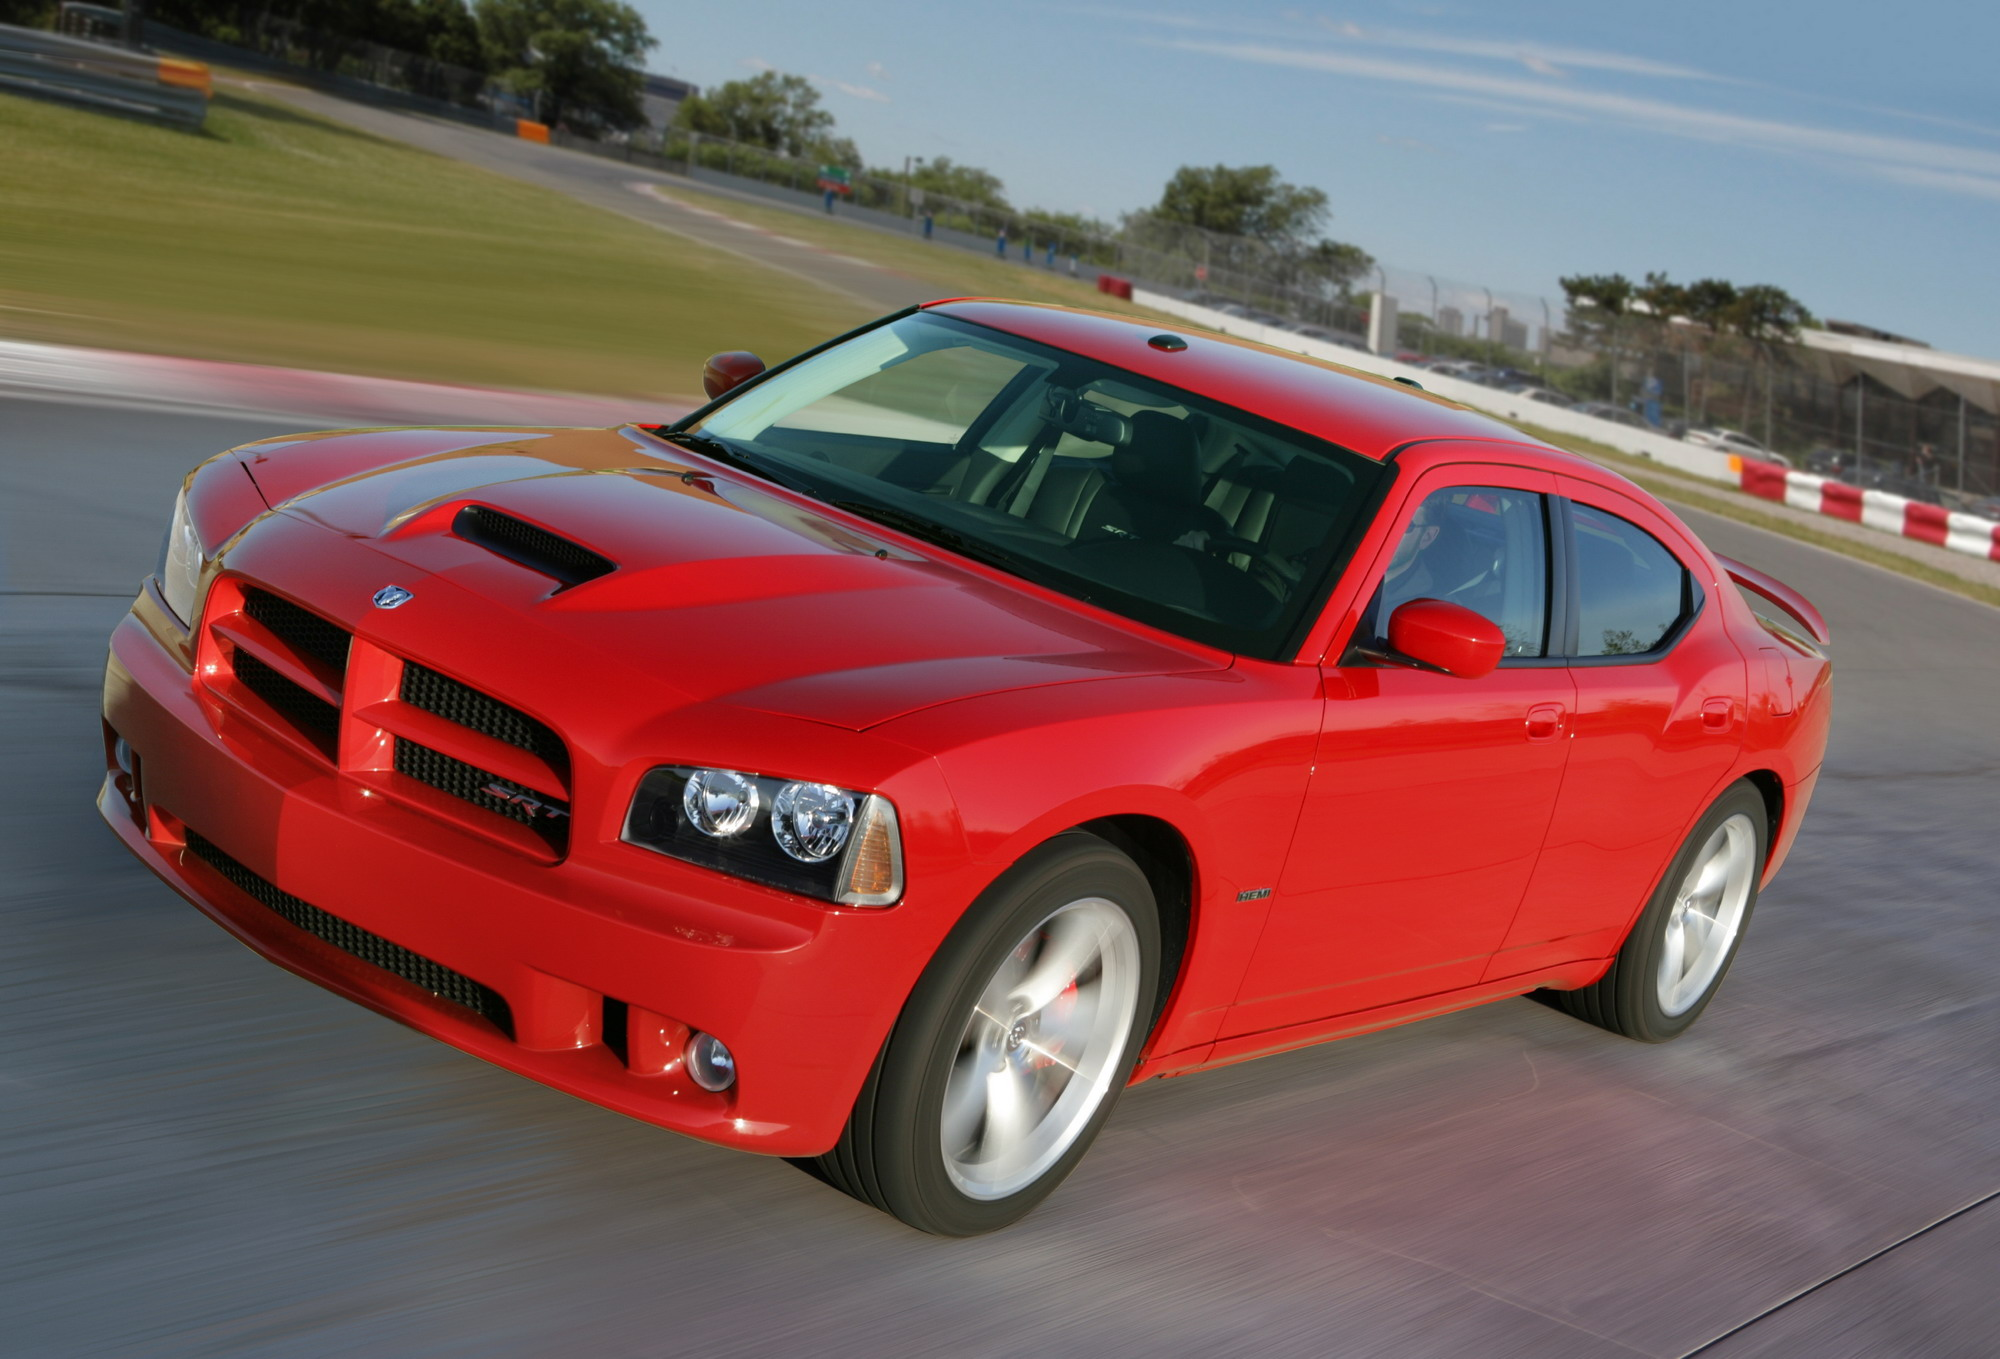 2010-dodge-charger-5.jpg